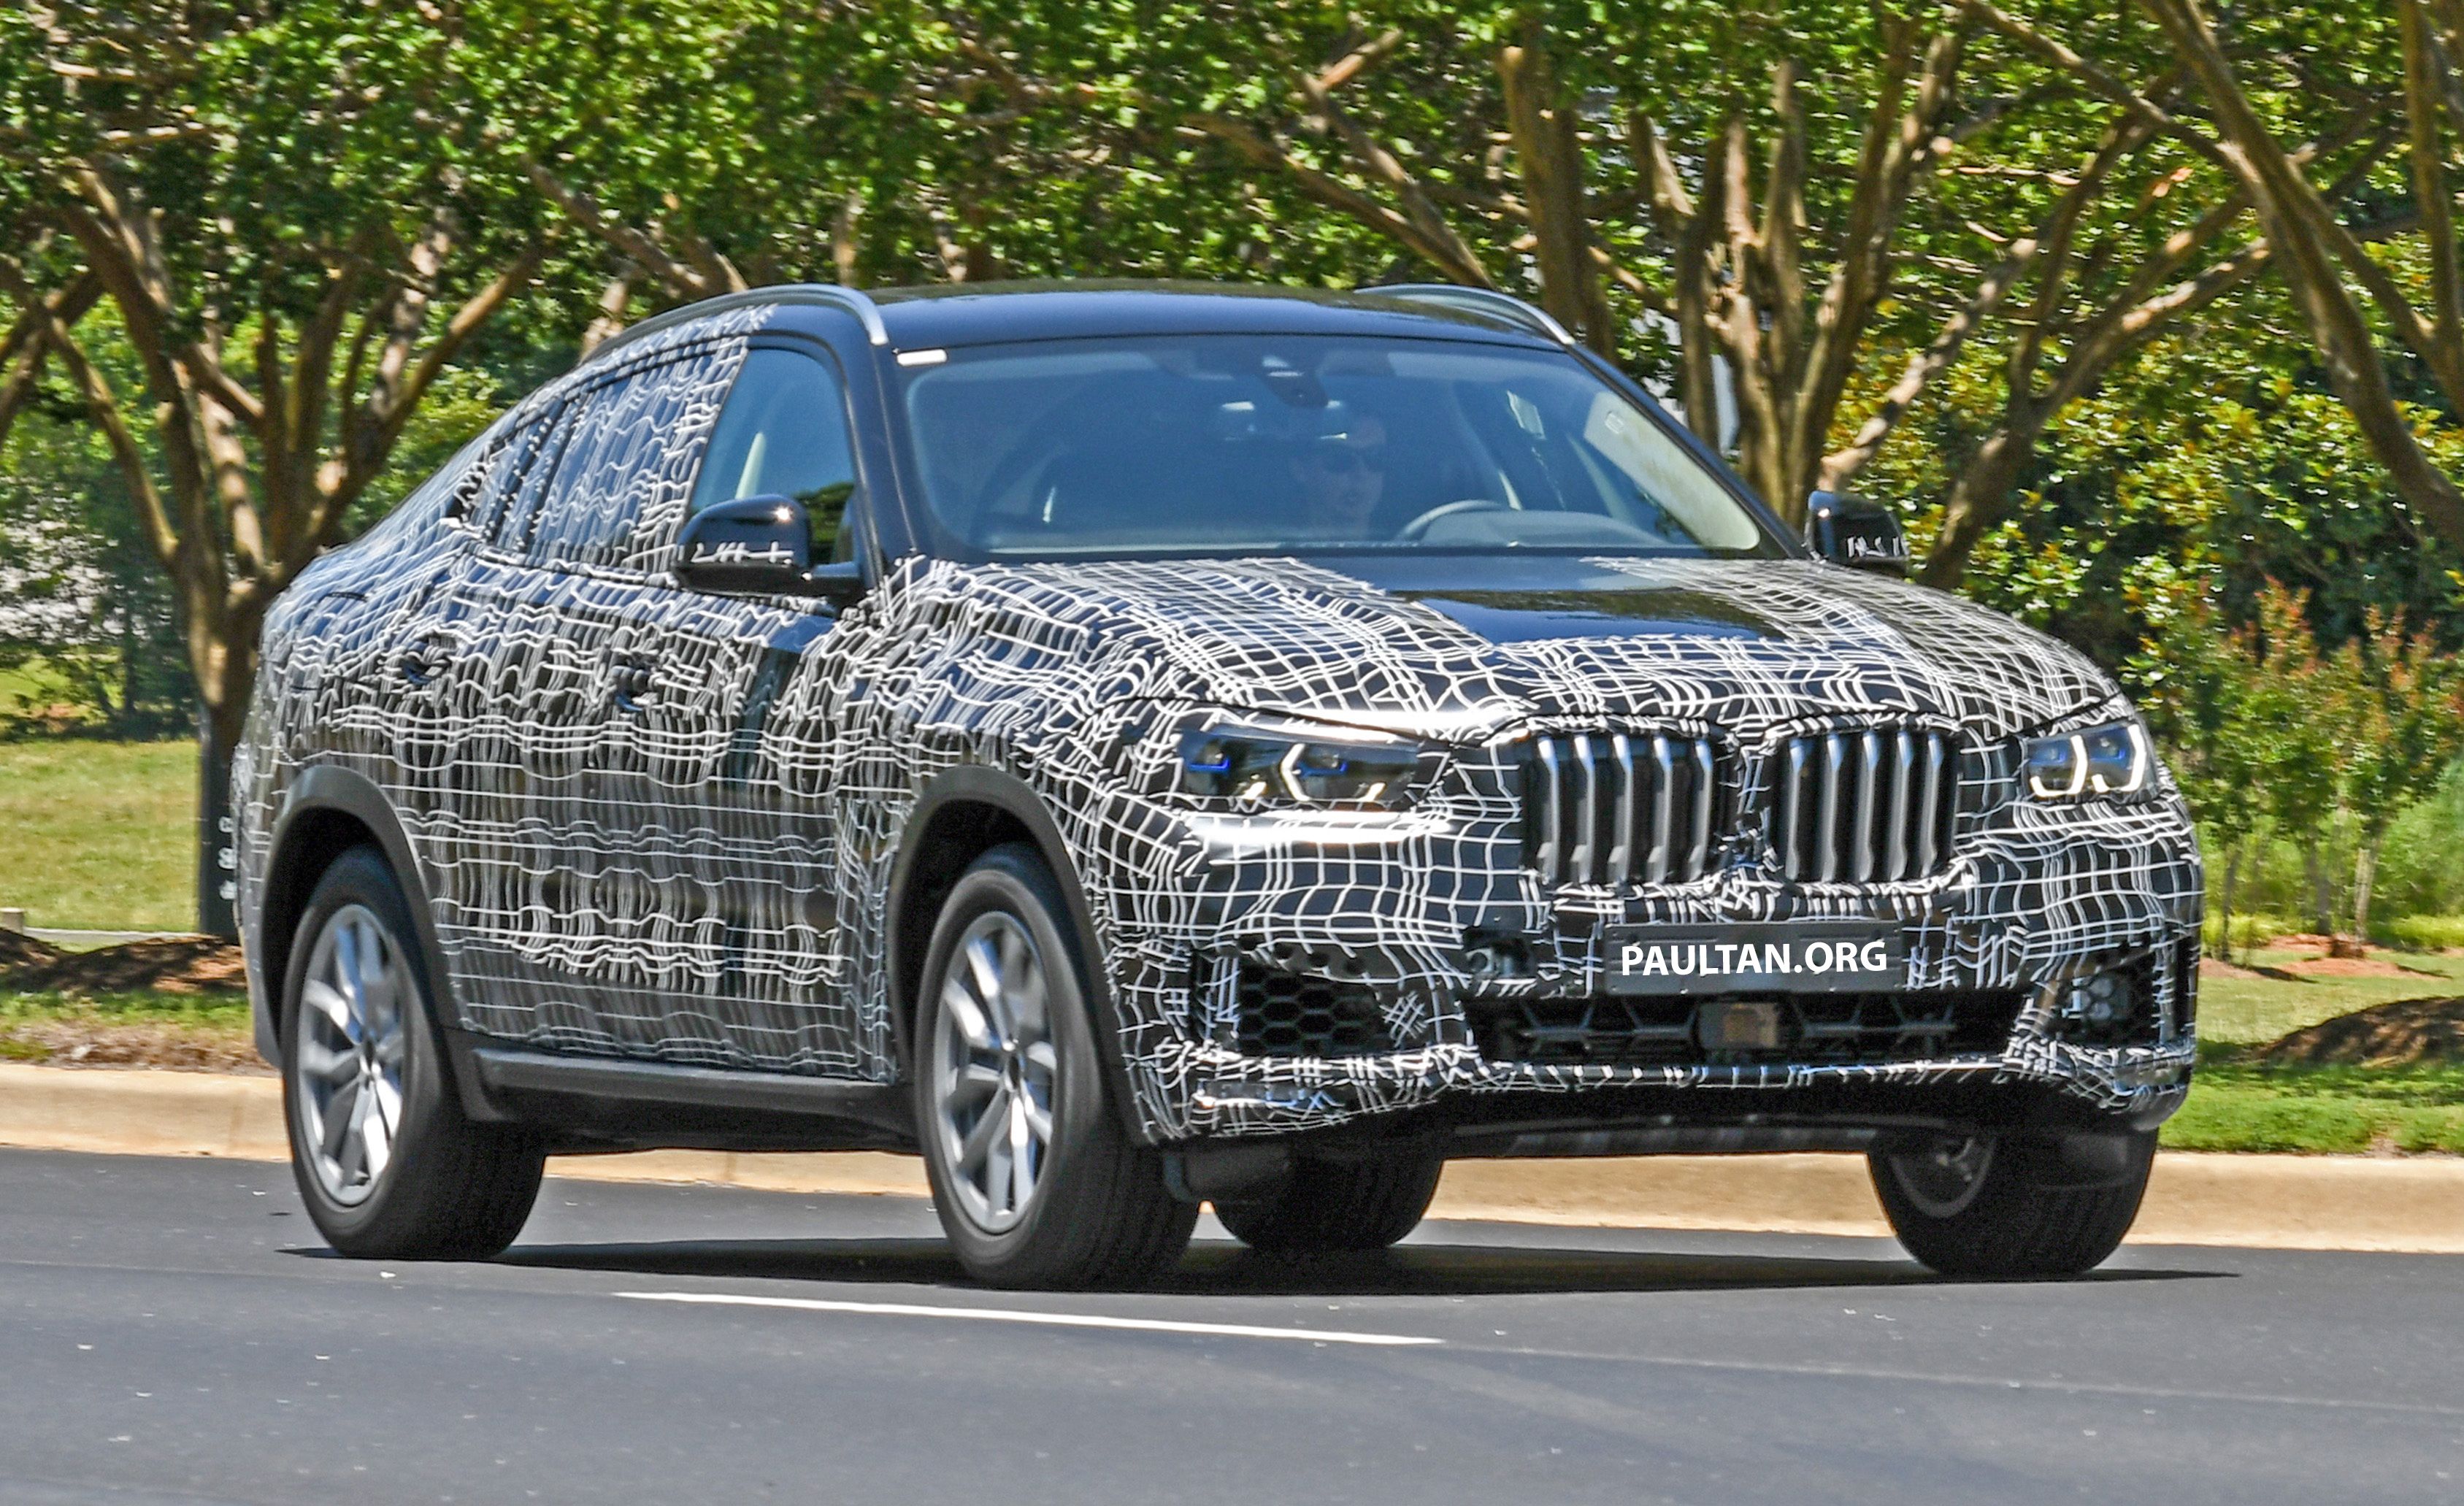 SPIED: G06 BMW X6 – new X5 coupe seen testing Paul Tan ...